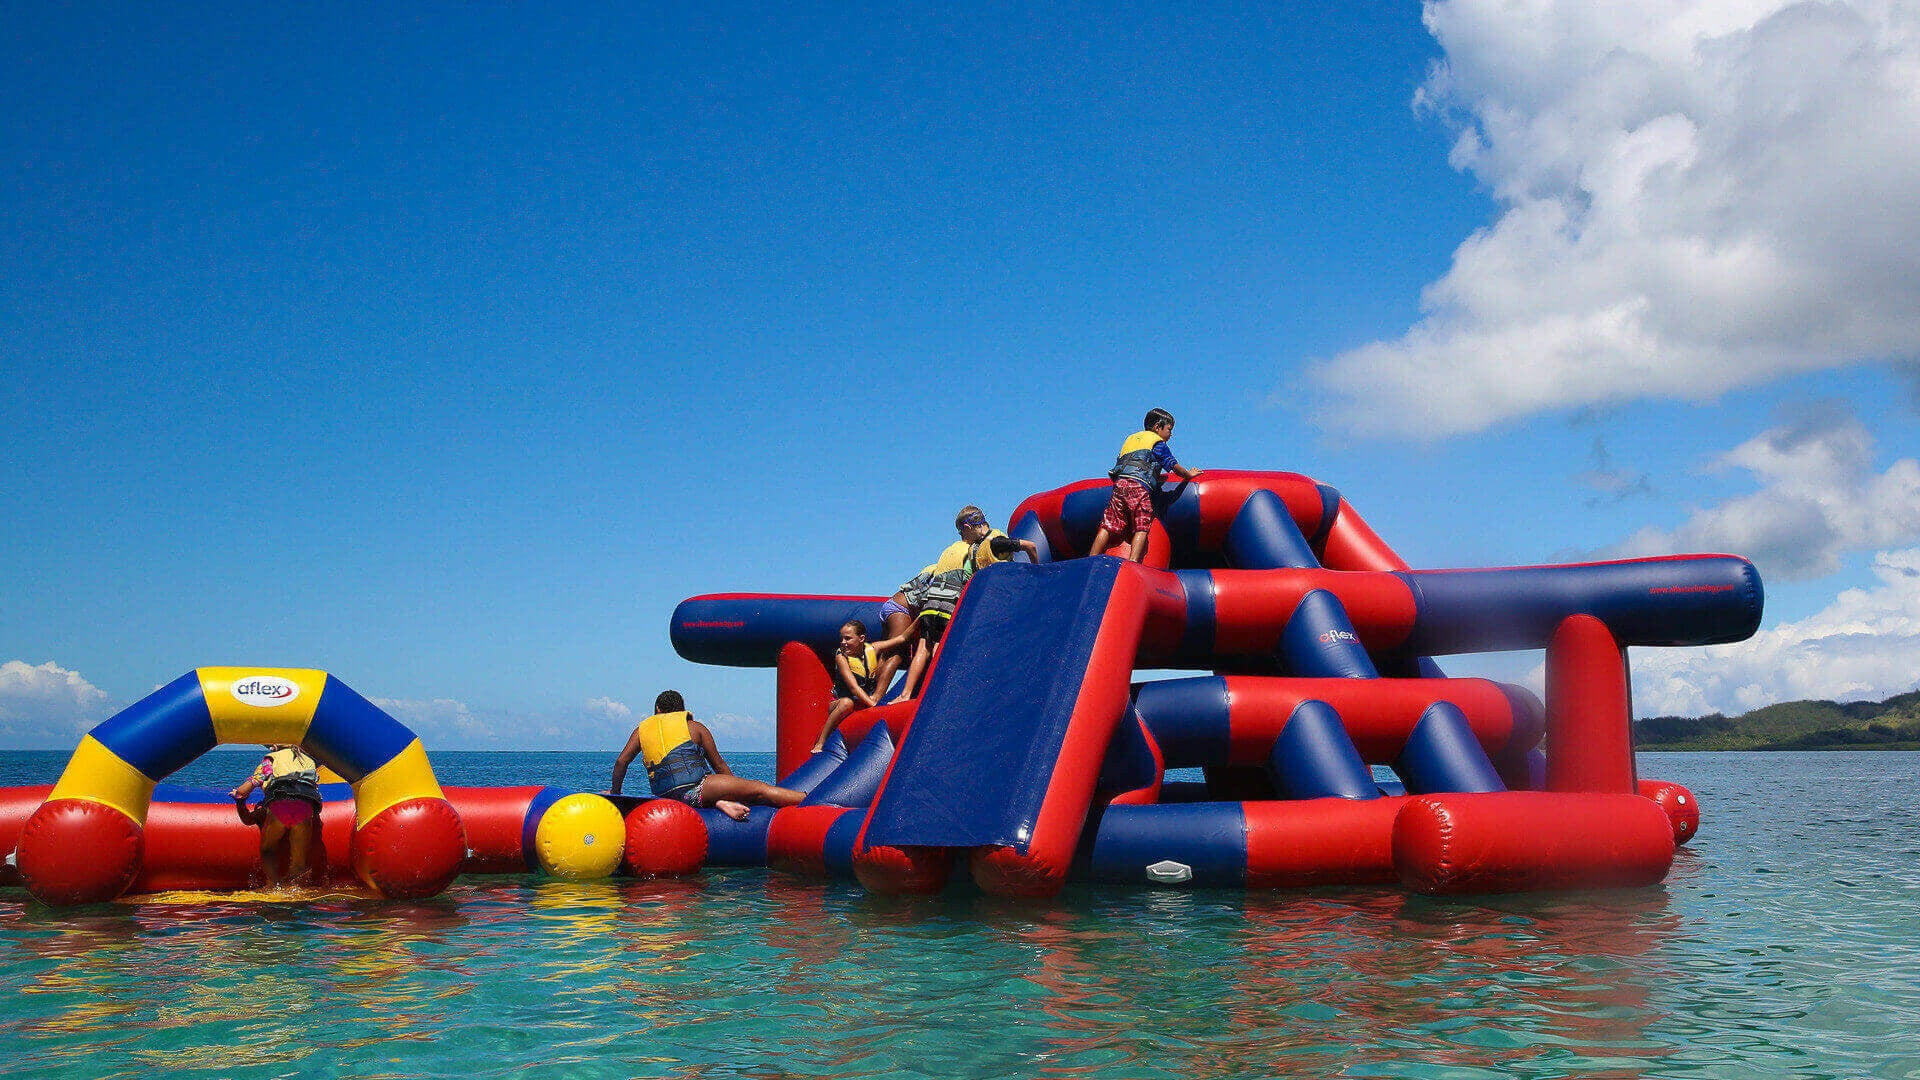 Aqua Adventure Action Zone Waterpark - Inflatable Waterpark for Open Water - Aflex Technology